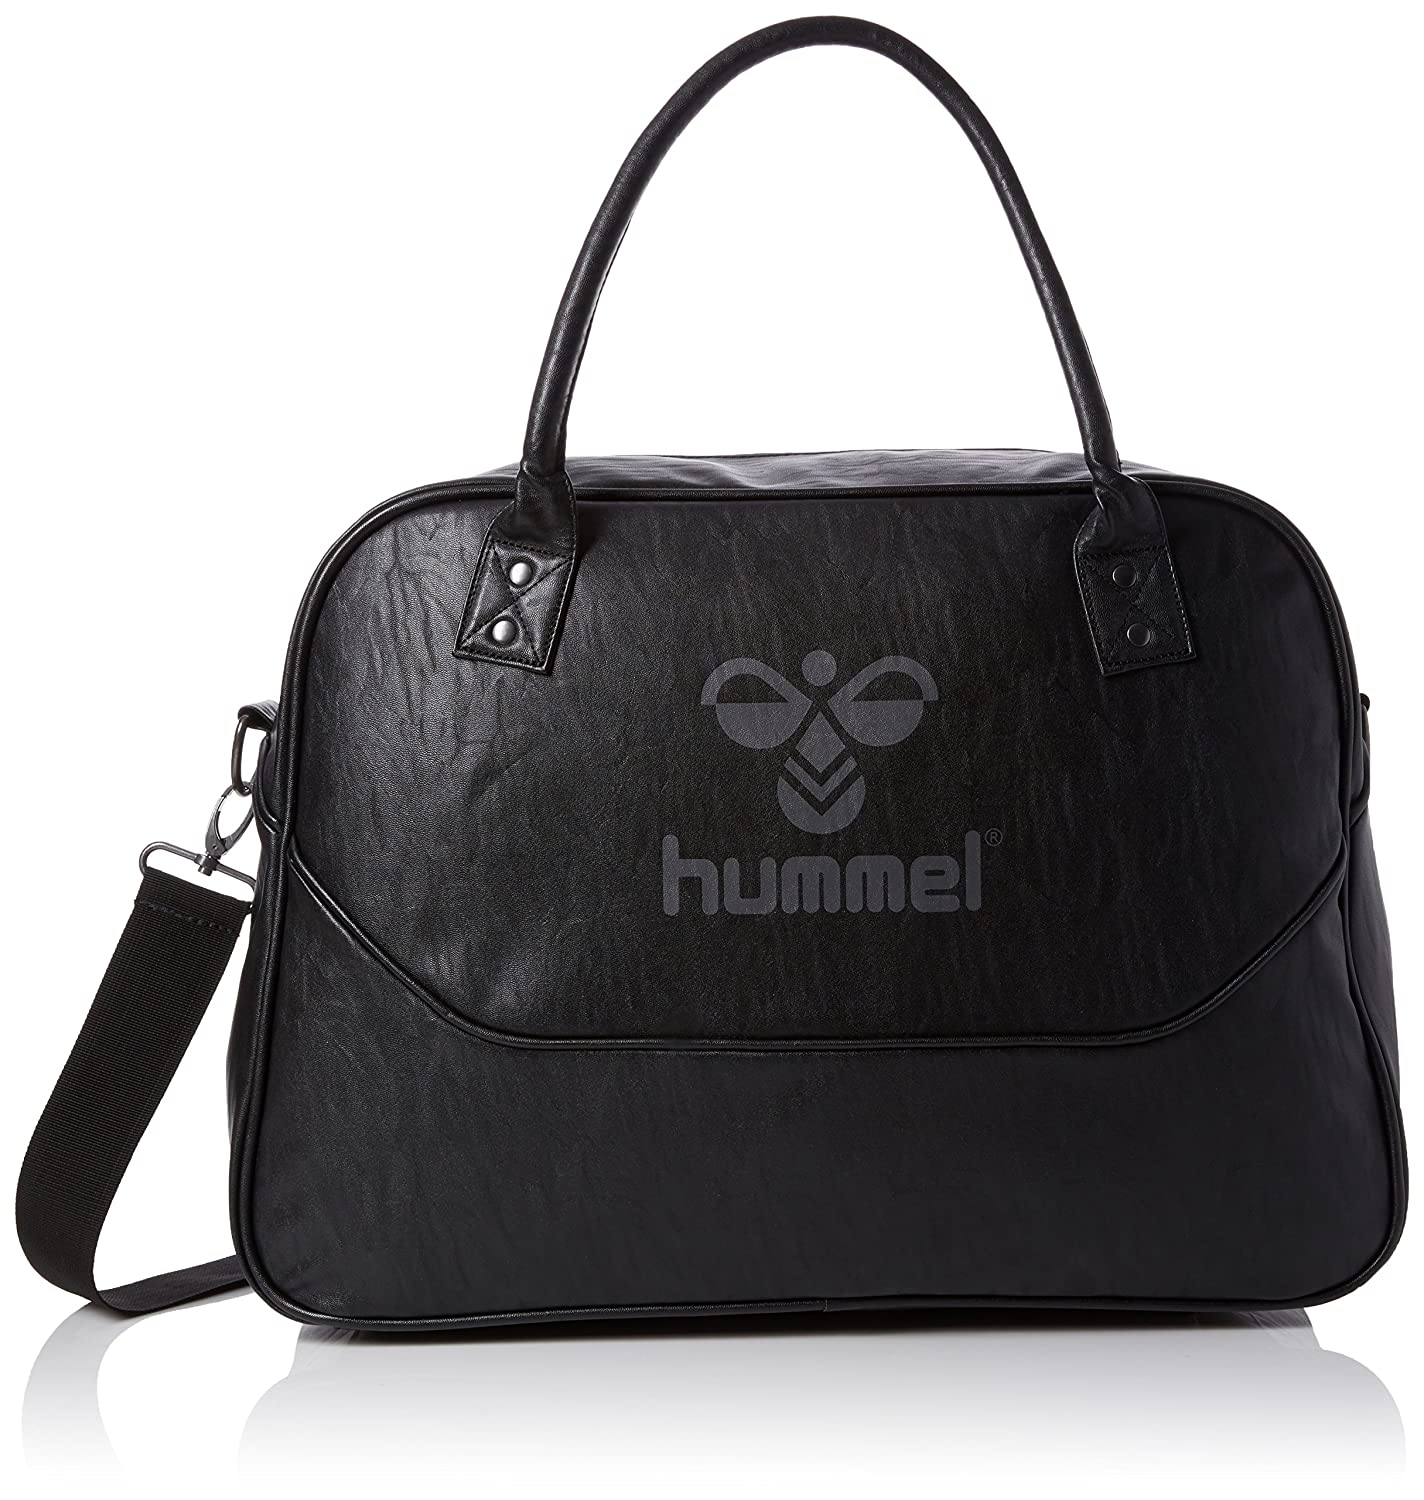 Hummel Lugo big weekend bag - Black 50 x 39 x 23 cm HUMBC|#Hummel 40-995-2001